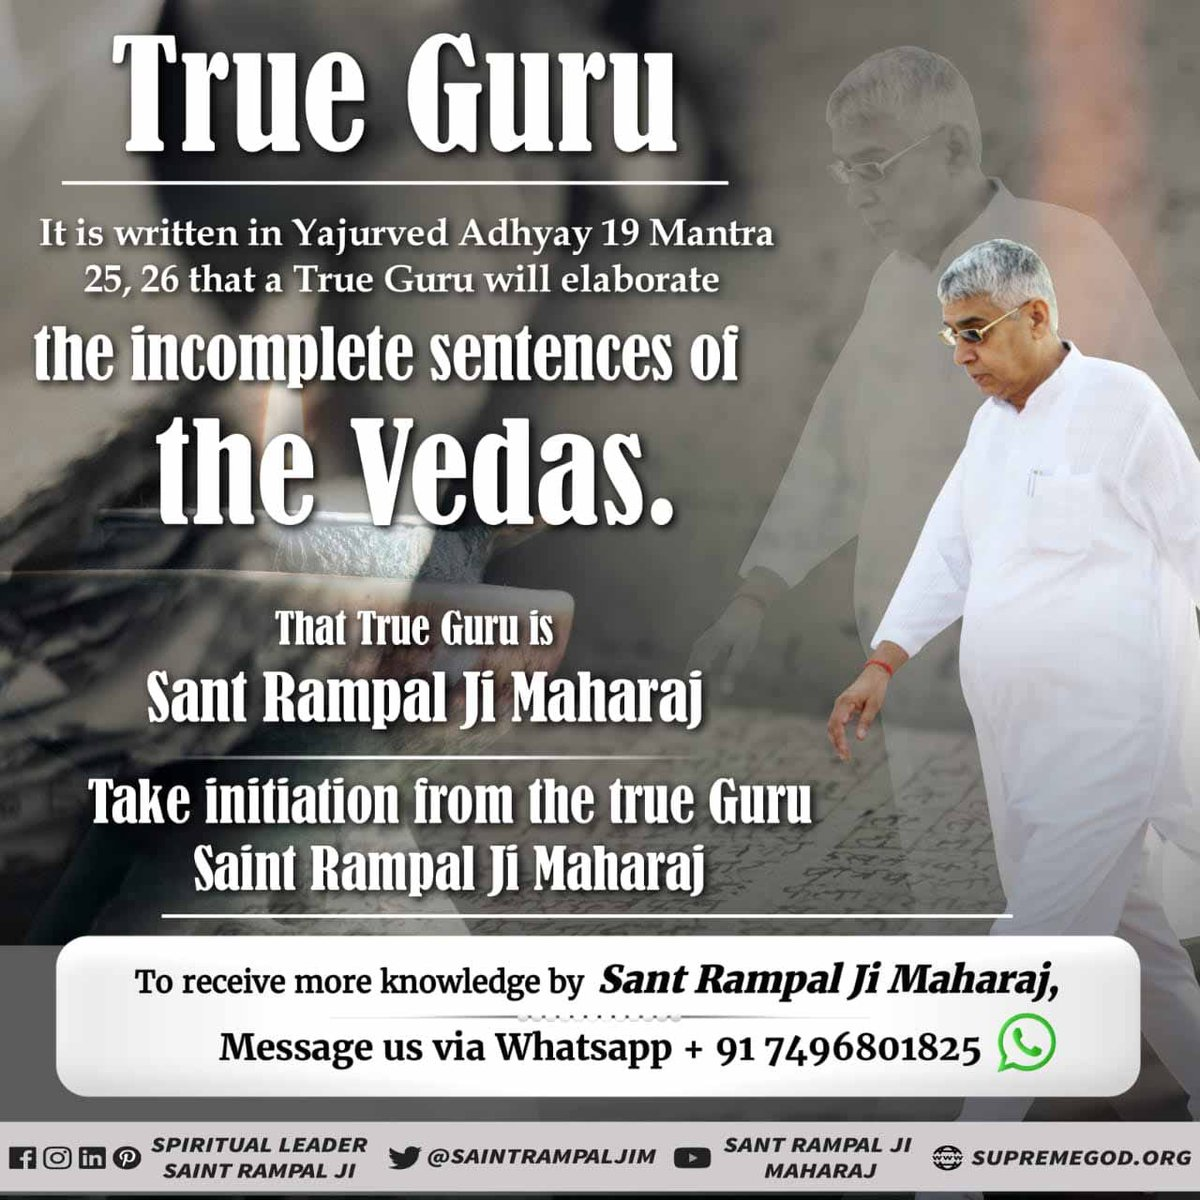 #GuruPurnima Purna Guru / True Satguru builds a clean society with his true knowledge.  A hypocritical, drug-free, dowry-free, corruption-free society is being prepared under the leadership of full Guru #Sant_RampalJi_Maharaj. Watch sadhna TV at7 30 pm everyday.pic.twitter.com/CNr8kjuewm